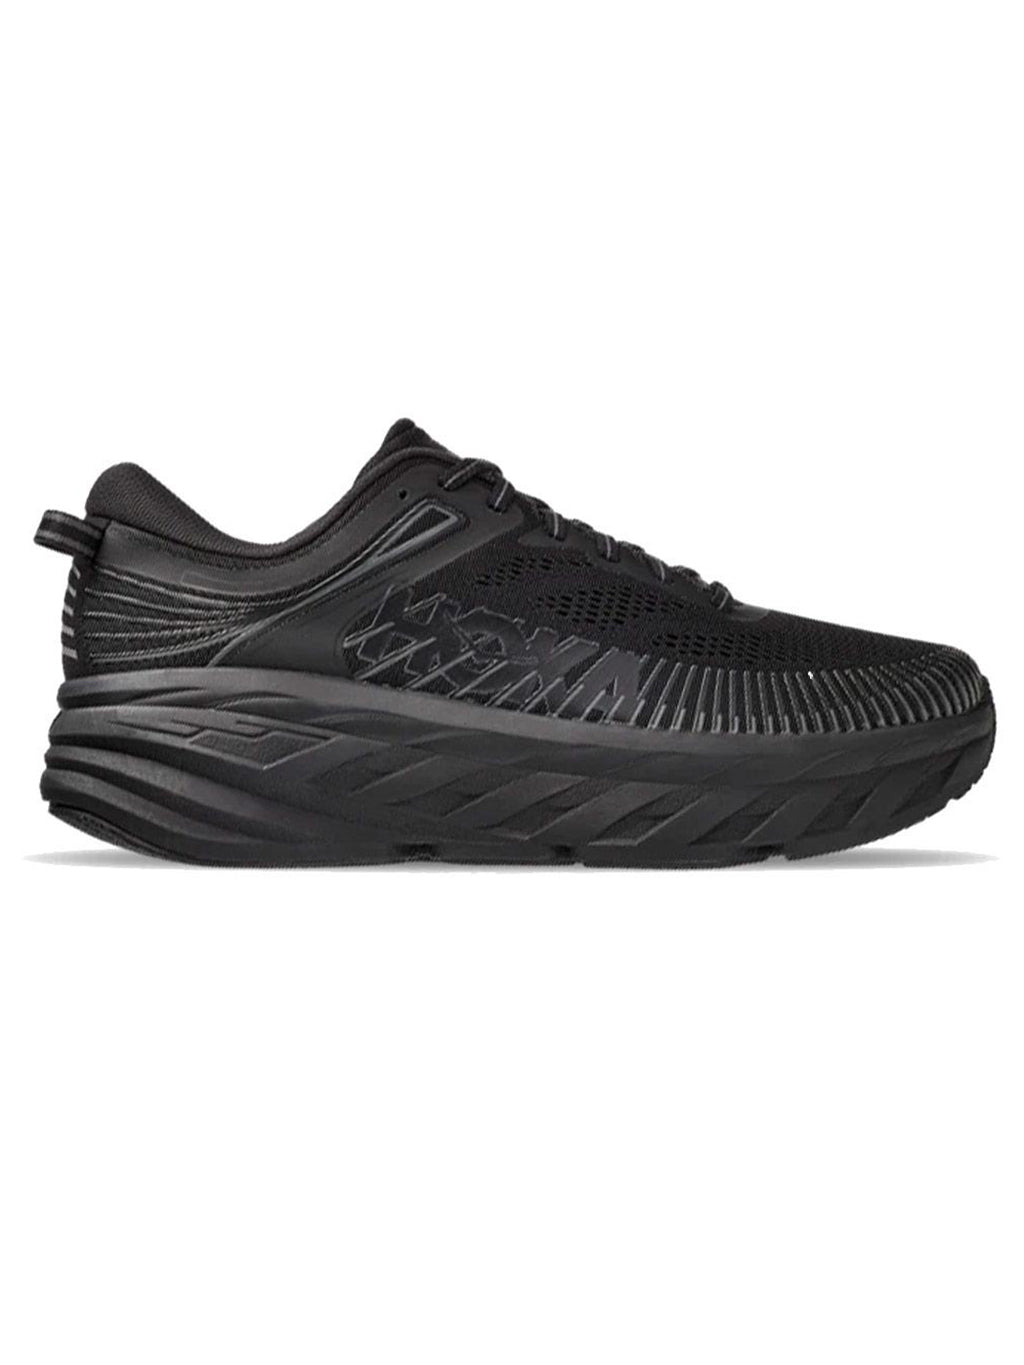 Black Bondi 7 Sneakers